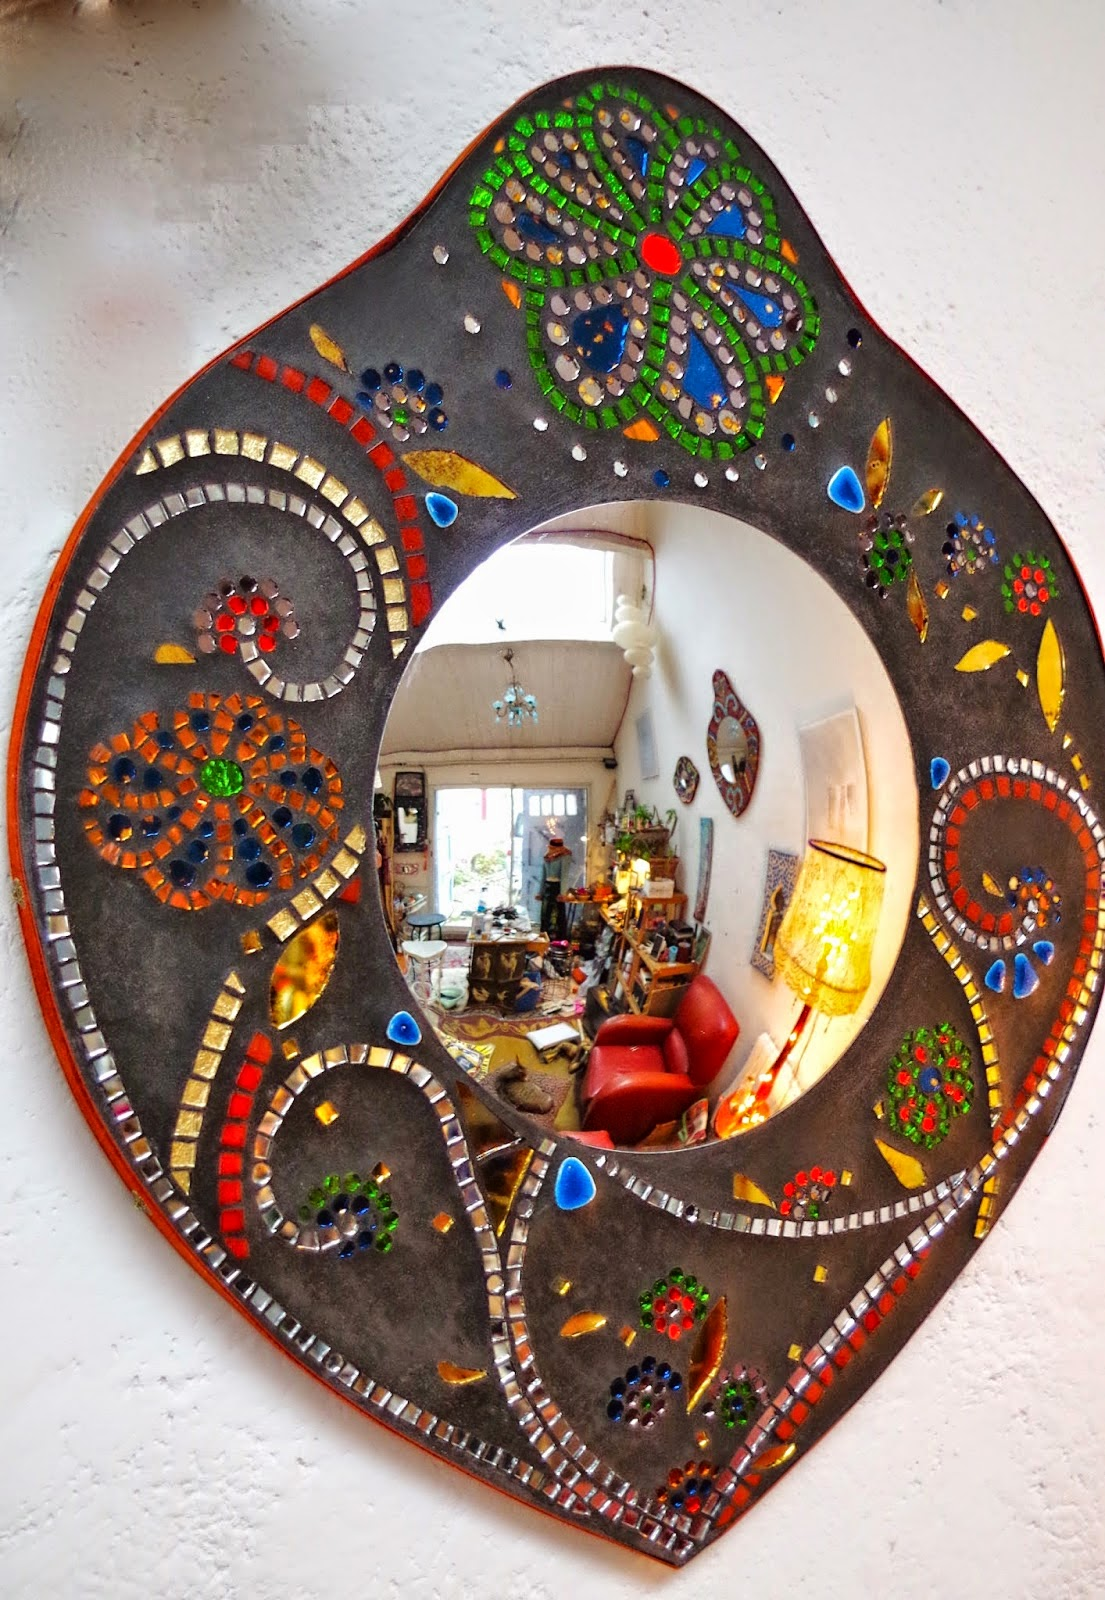 Annabel coutou mosaique miroirs de sorci re for Miroir de sorciere definition